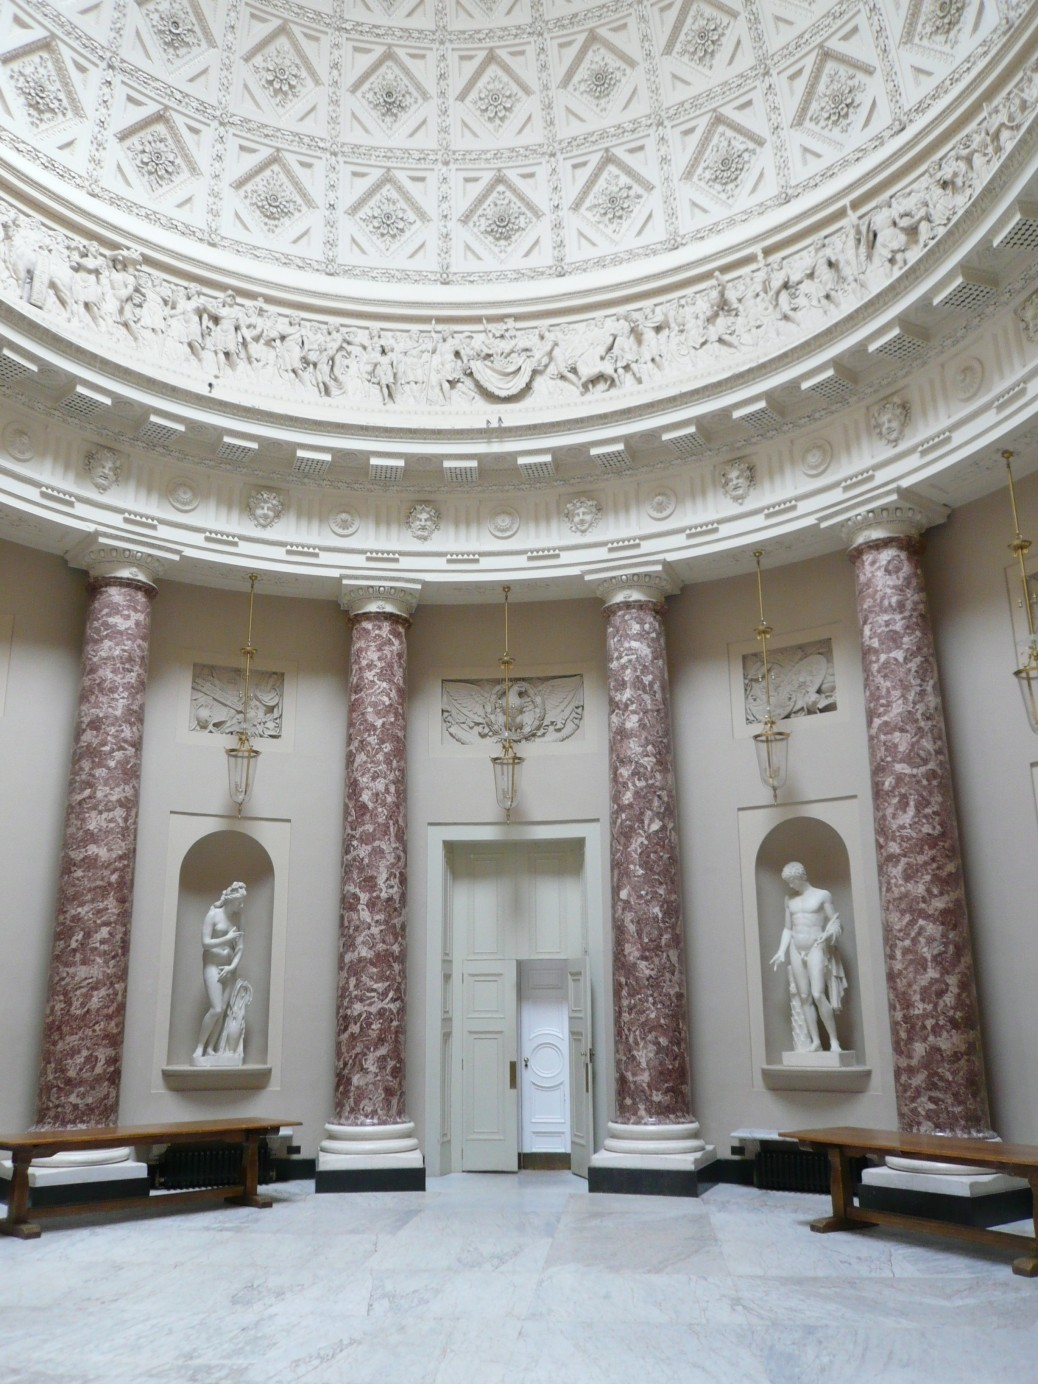 Music School for Stowe School site image 7